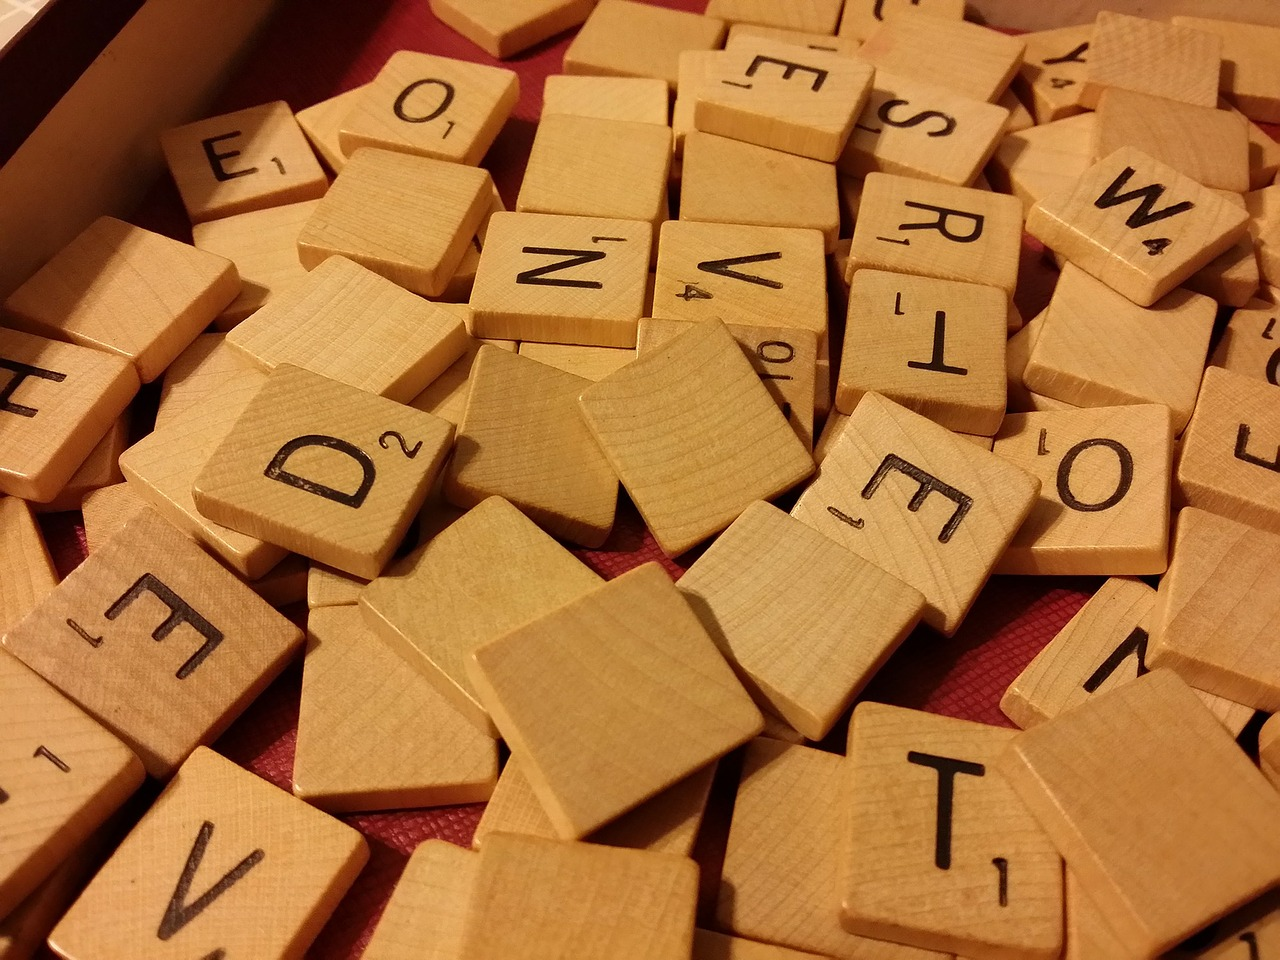 scrabble,game,board game,words,letters,puzzle,activity,fun,leisure,recreation,recreational,play,playing,competition,free pictures, free photos, free images, royalty free, free illustrations, public domain